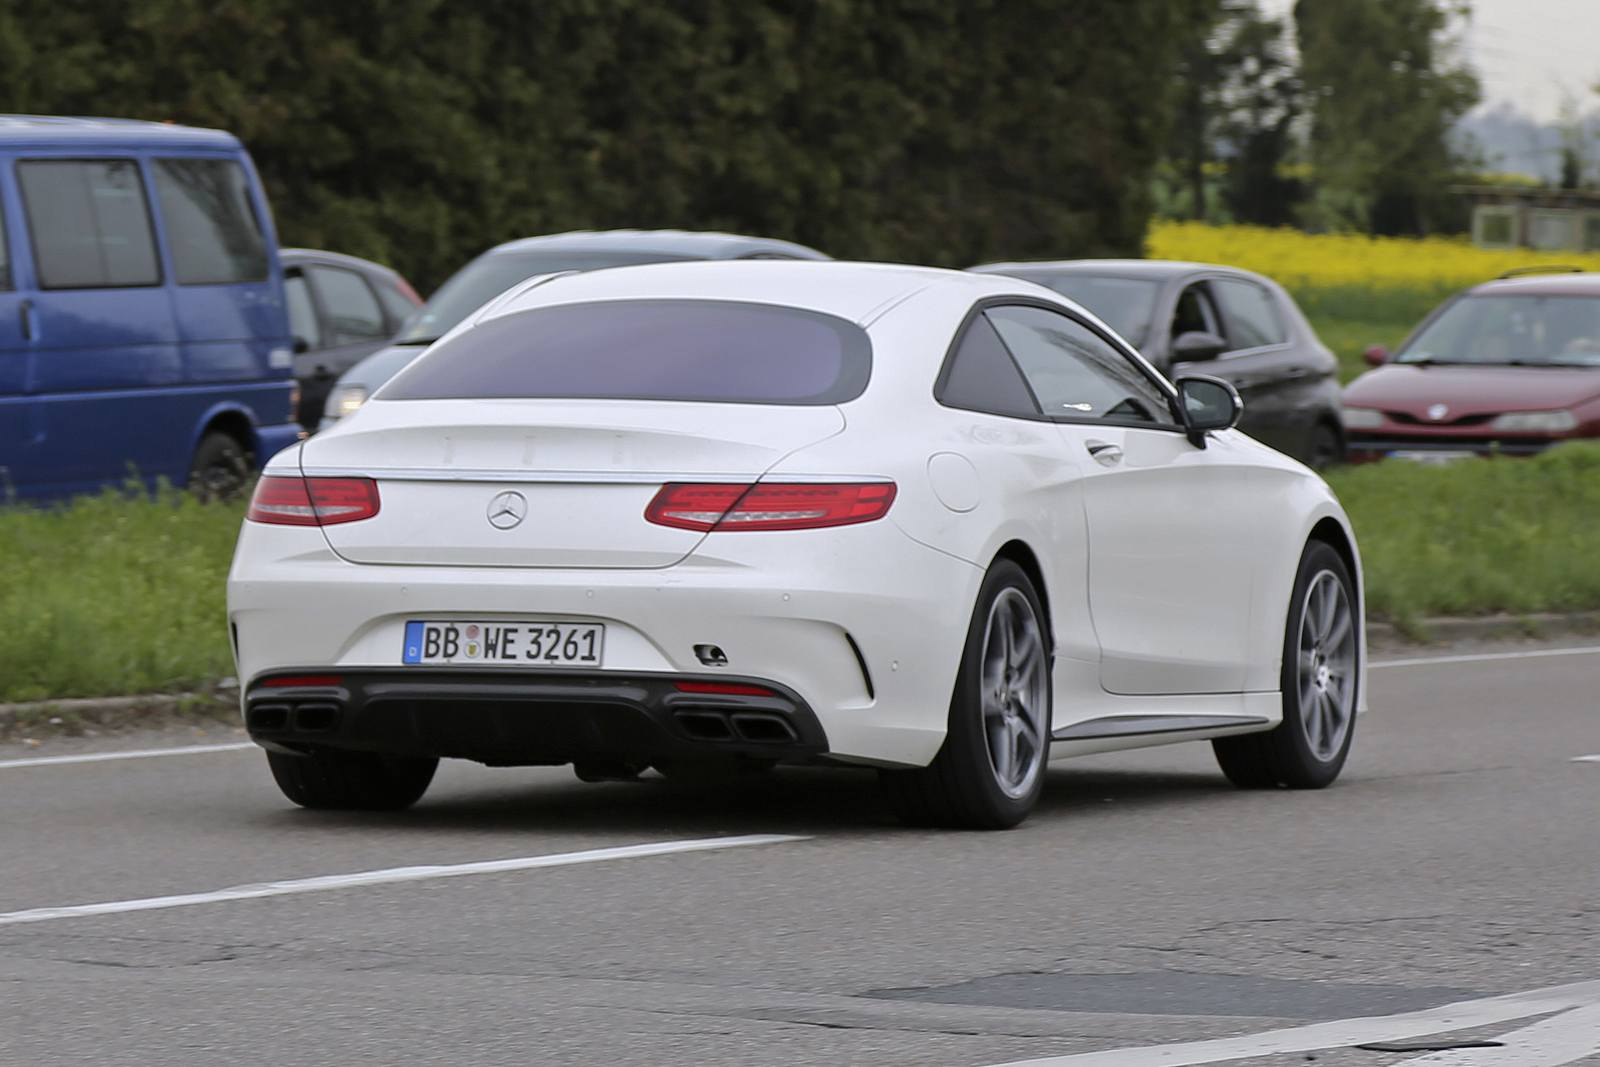 2018 mercedes benz e class coupe test mule spy shots for Mercedes benz e320 coupe